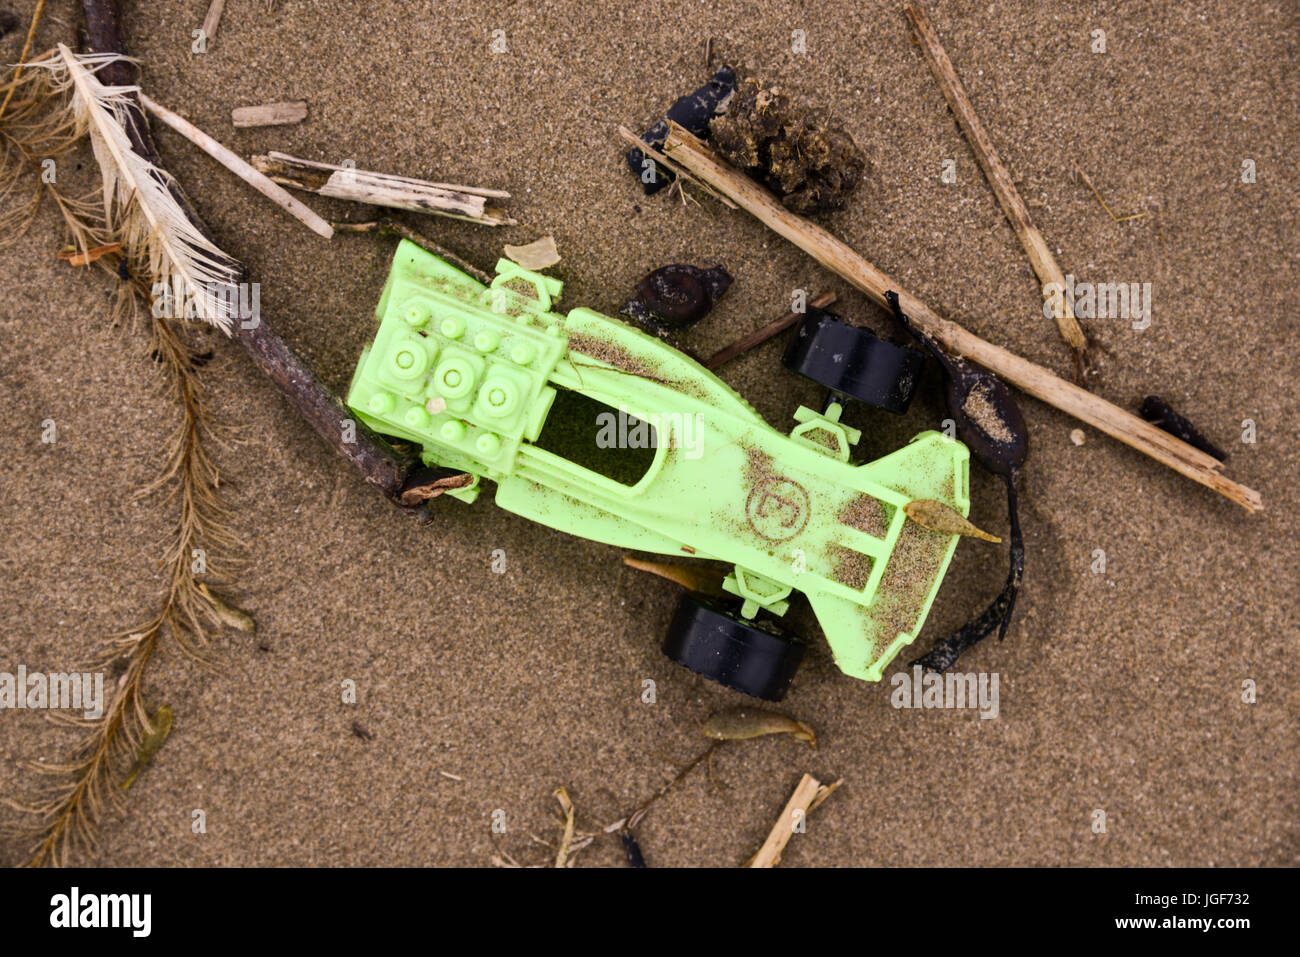 Debris and detritus left on Welsh beach following strong winds and severe weather conditions. UK. Stock Photo